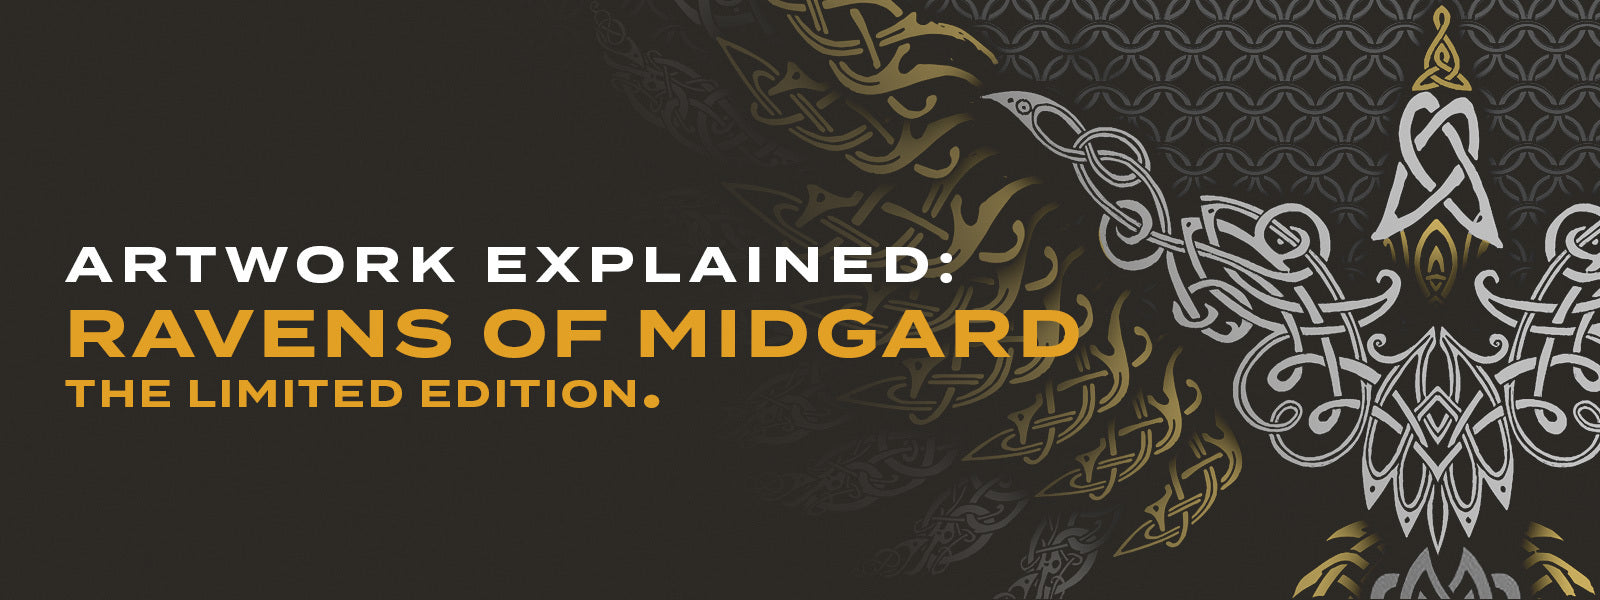 Artwork Explained: Ravens of Midgard: The limited edition